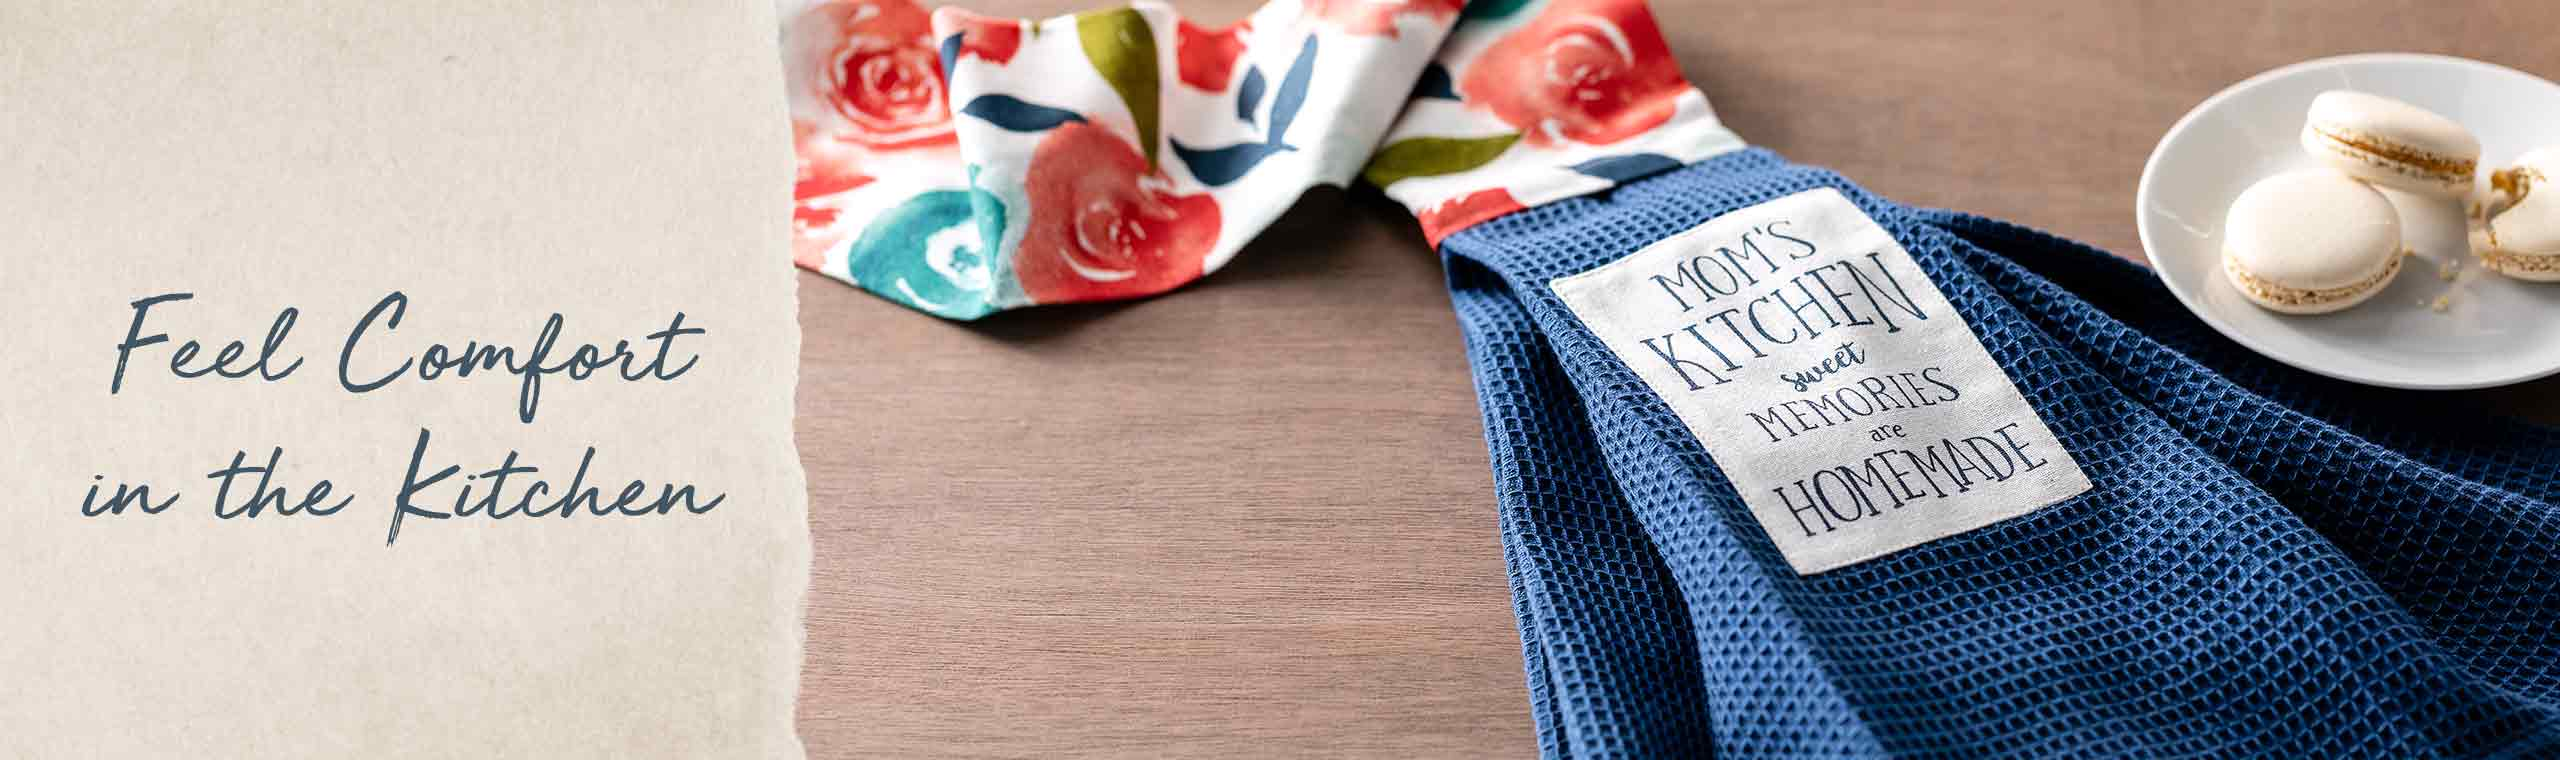 Feel the comfort in the Kitchen. photo of a blue wash towel with flowers